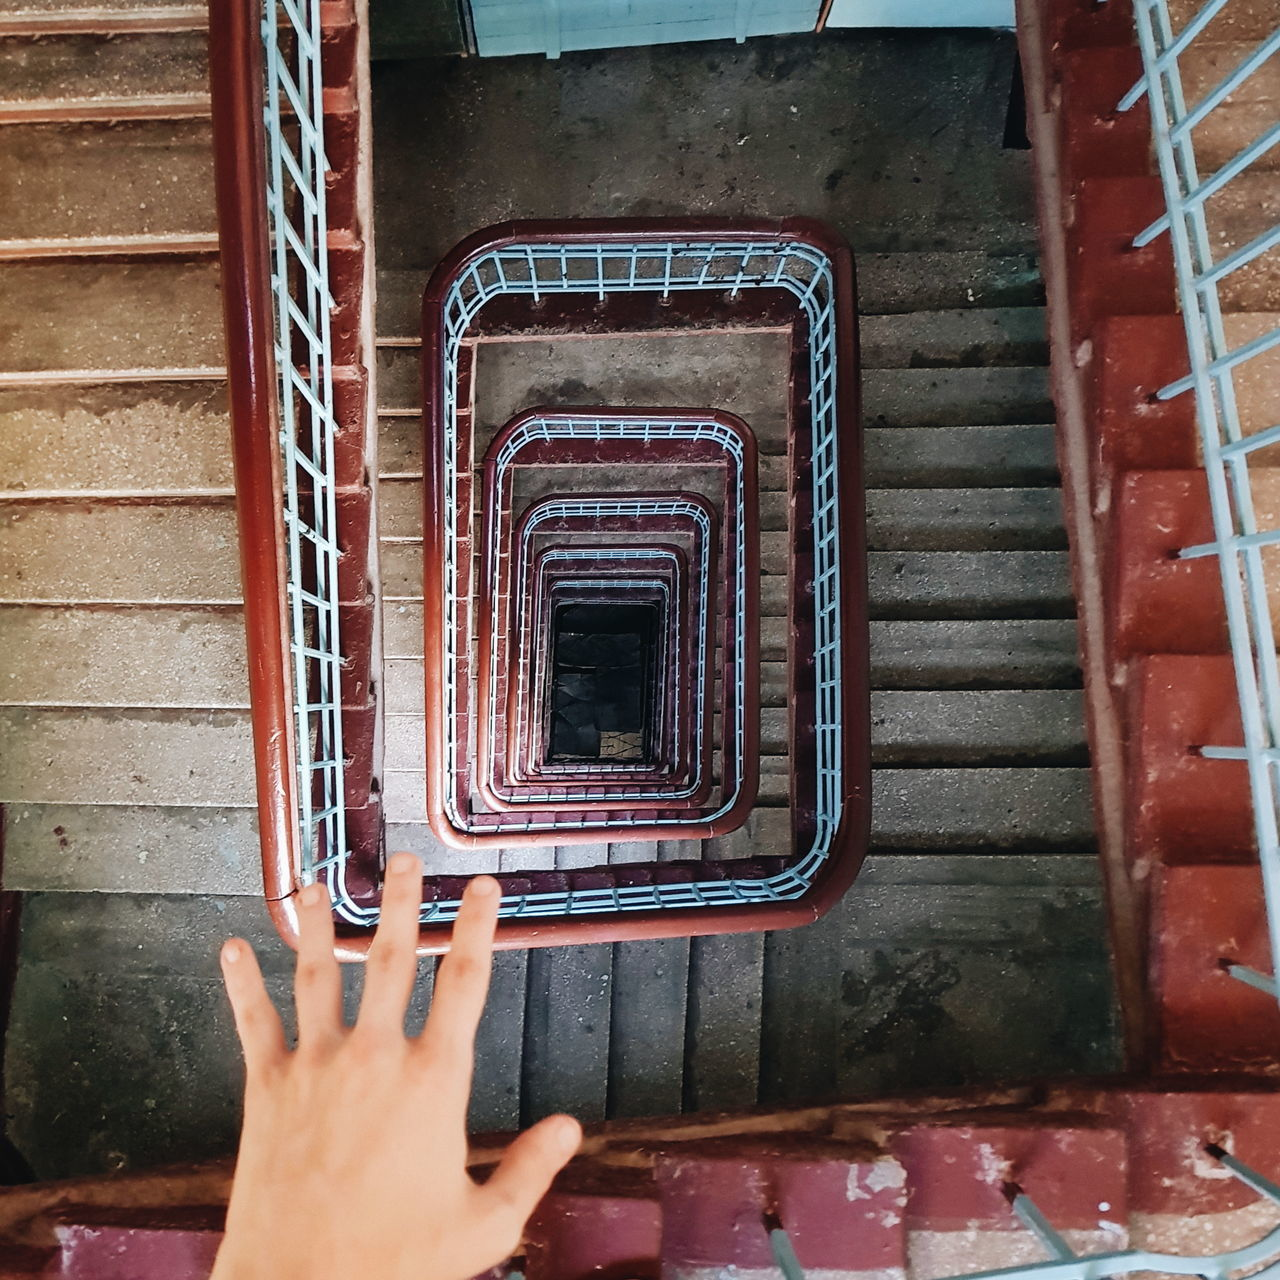 one person, real people, staircase, steps and staircases, steps, human body part, indoors, personal perspective, human hand, stairs, lifestyles, hand rail, day, adult, people, adults only